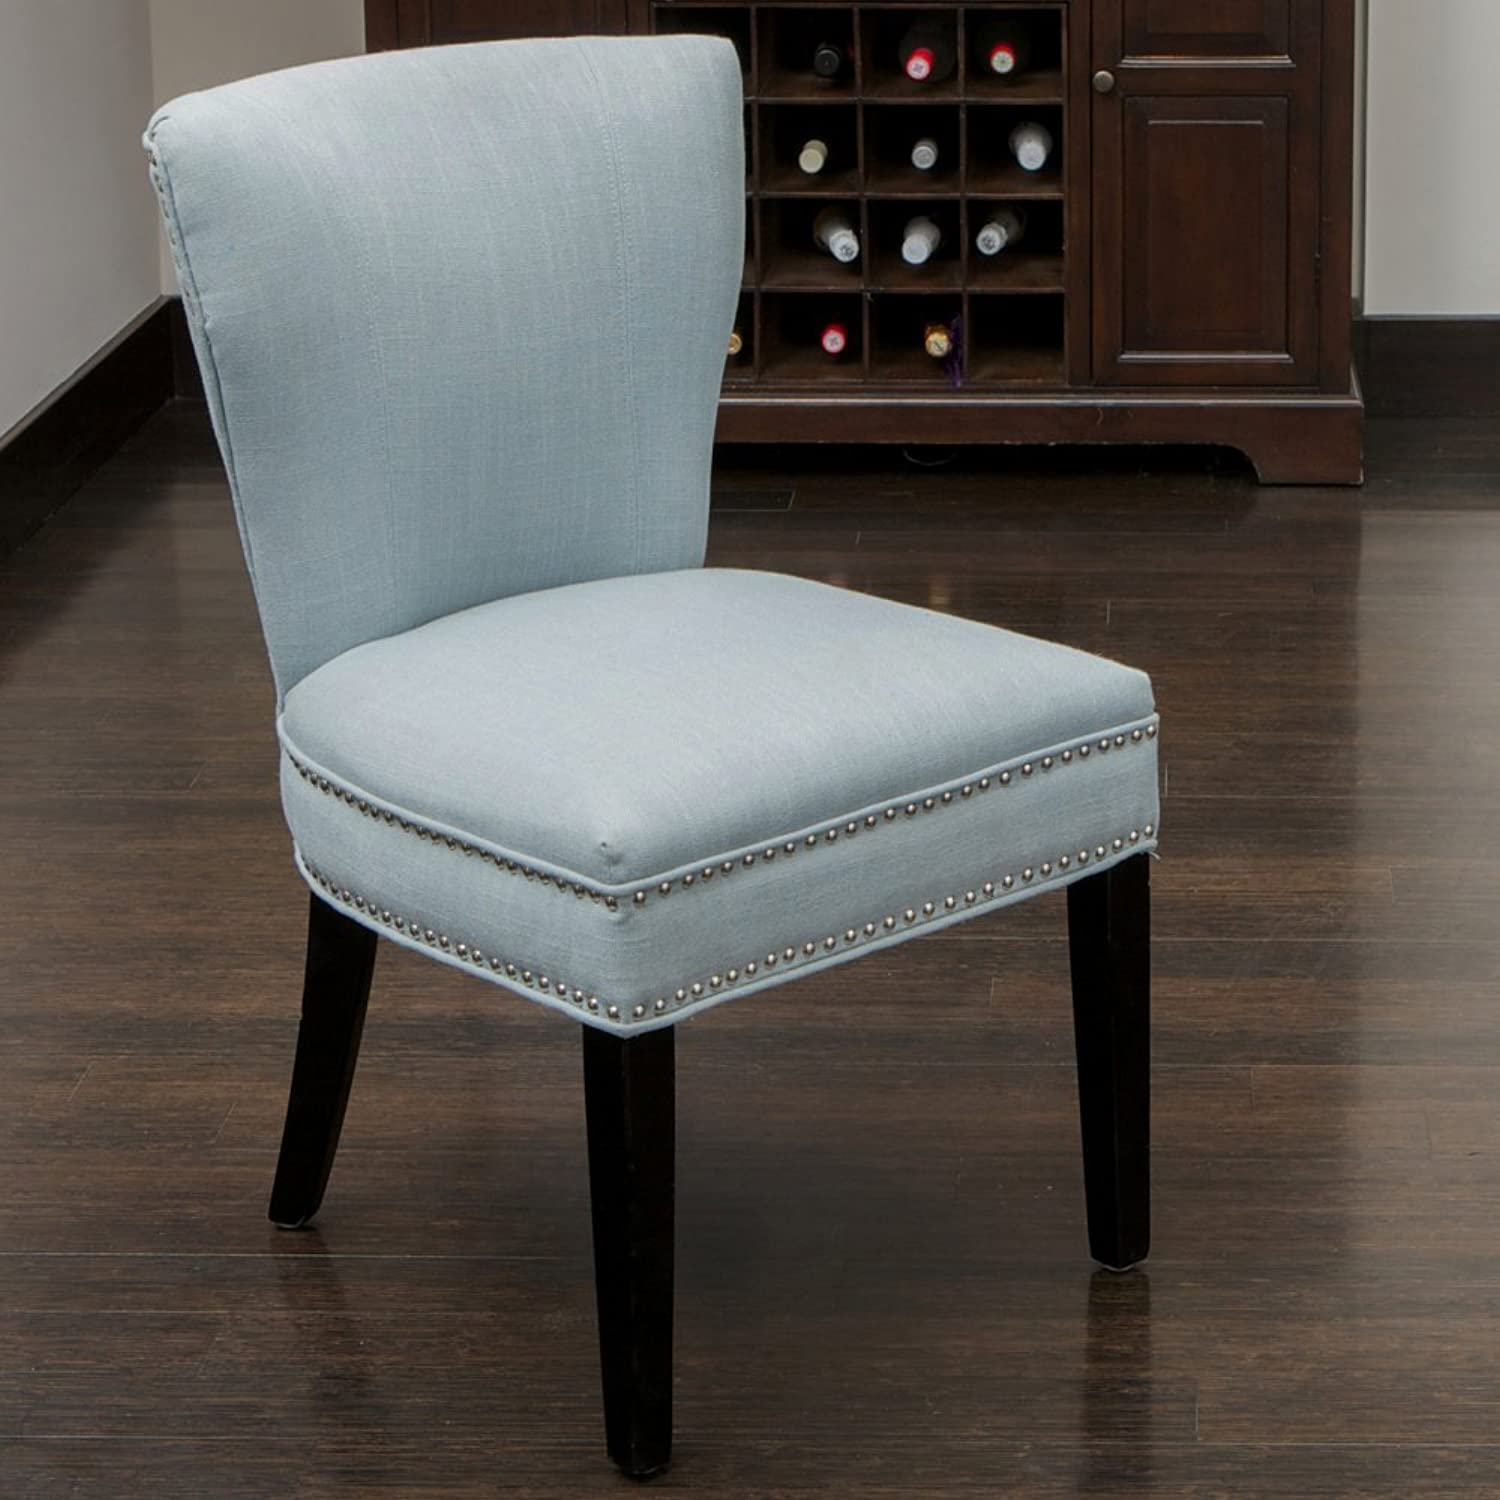 Best Selling Jackie Fabric Accent Dining Chair, Ocean bluee